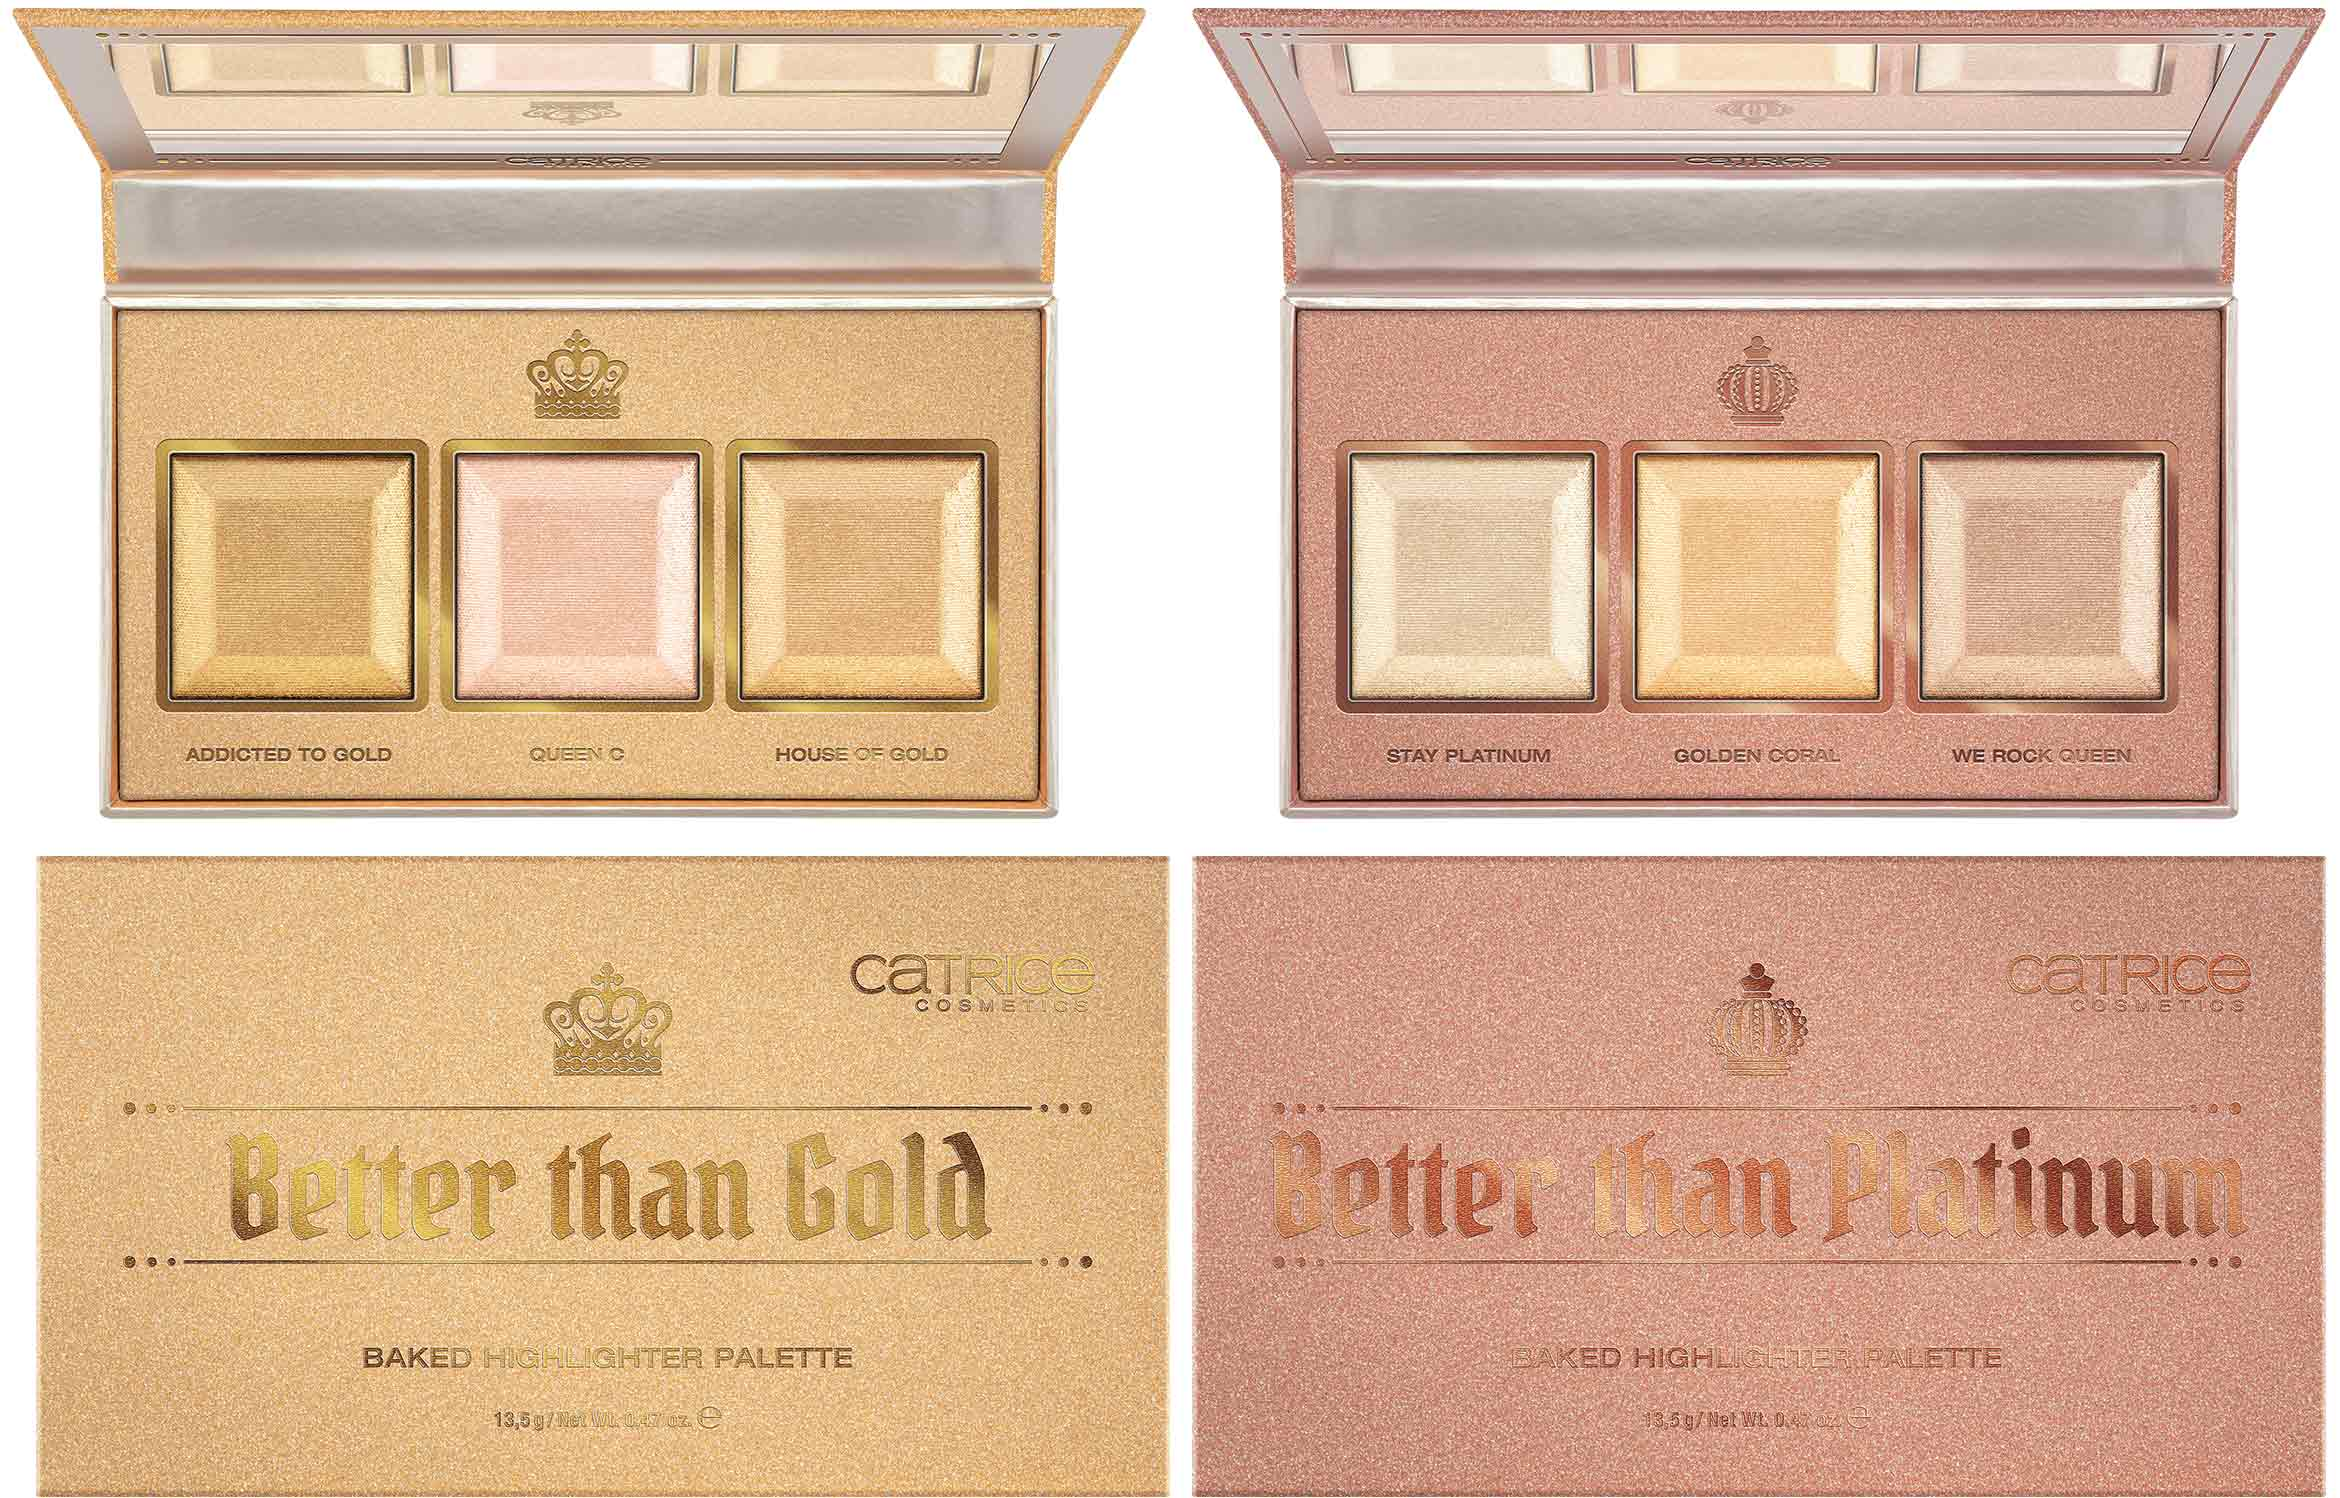 catrice-highlighter-palettes-better-than